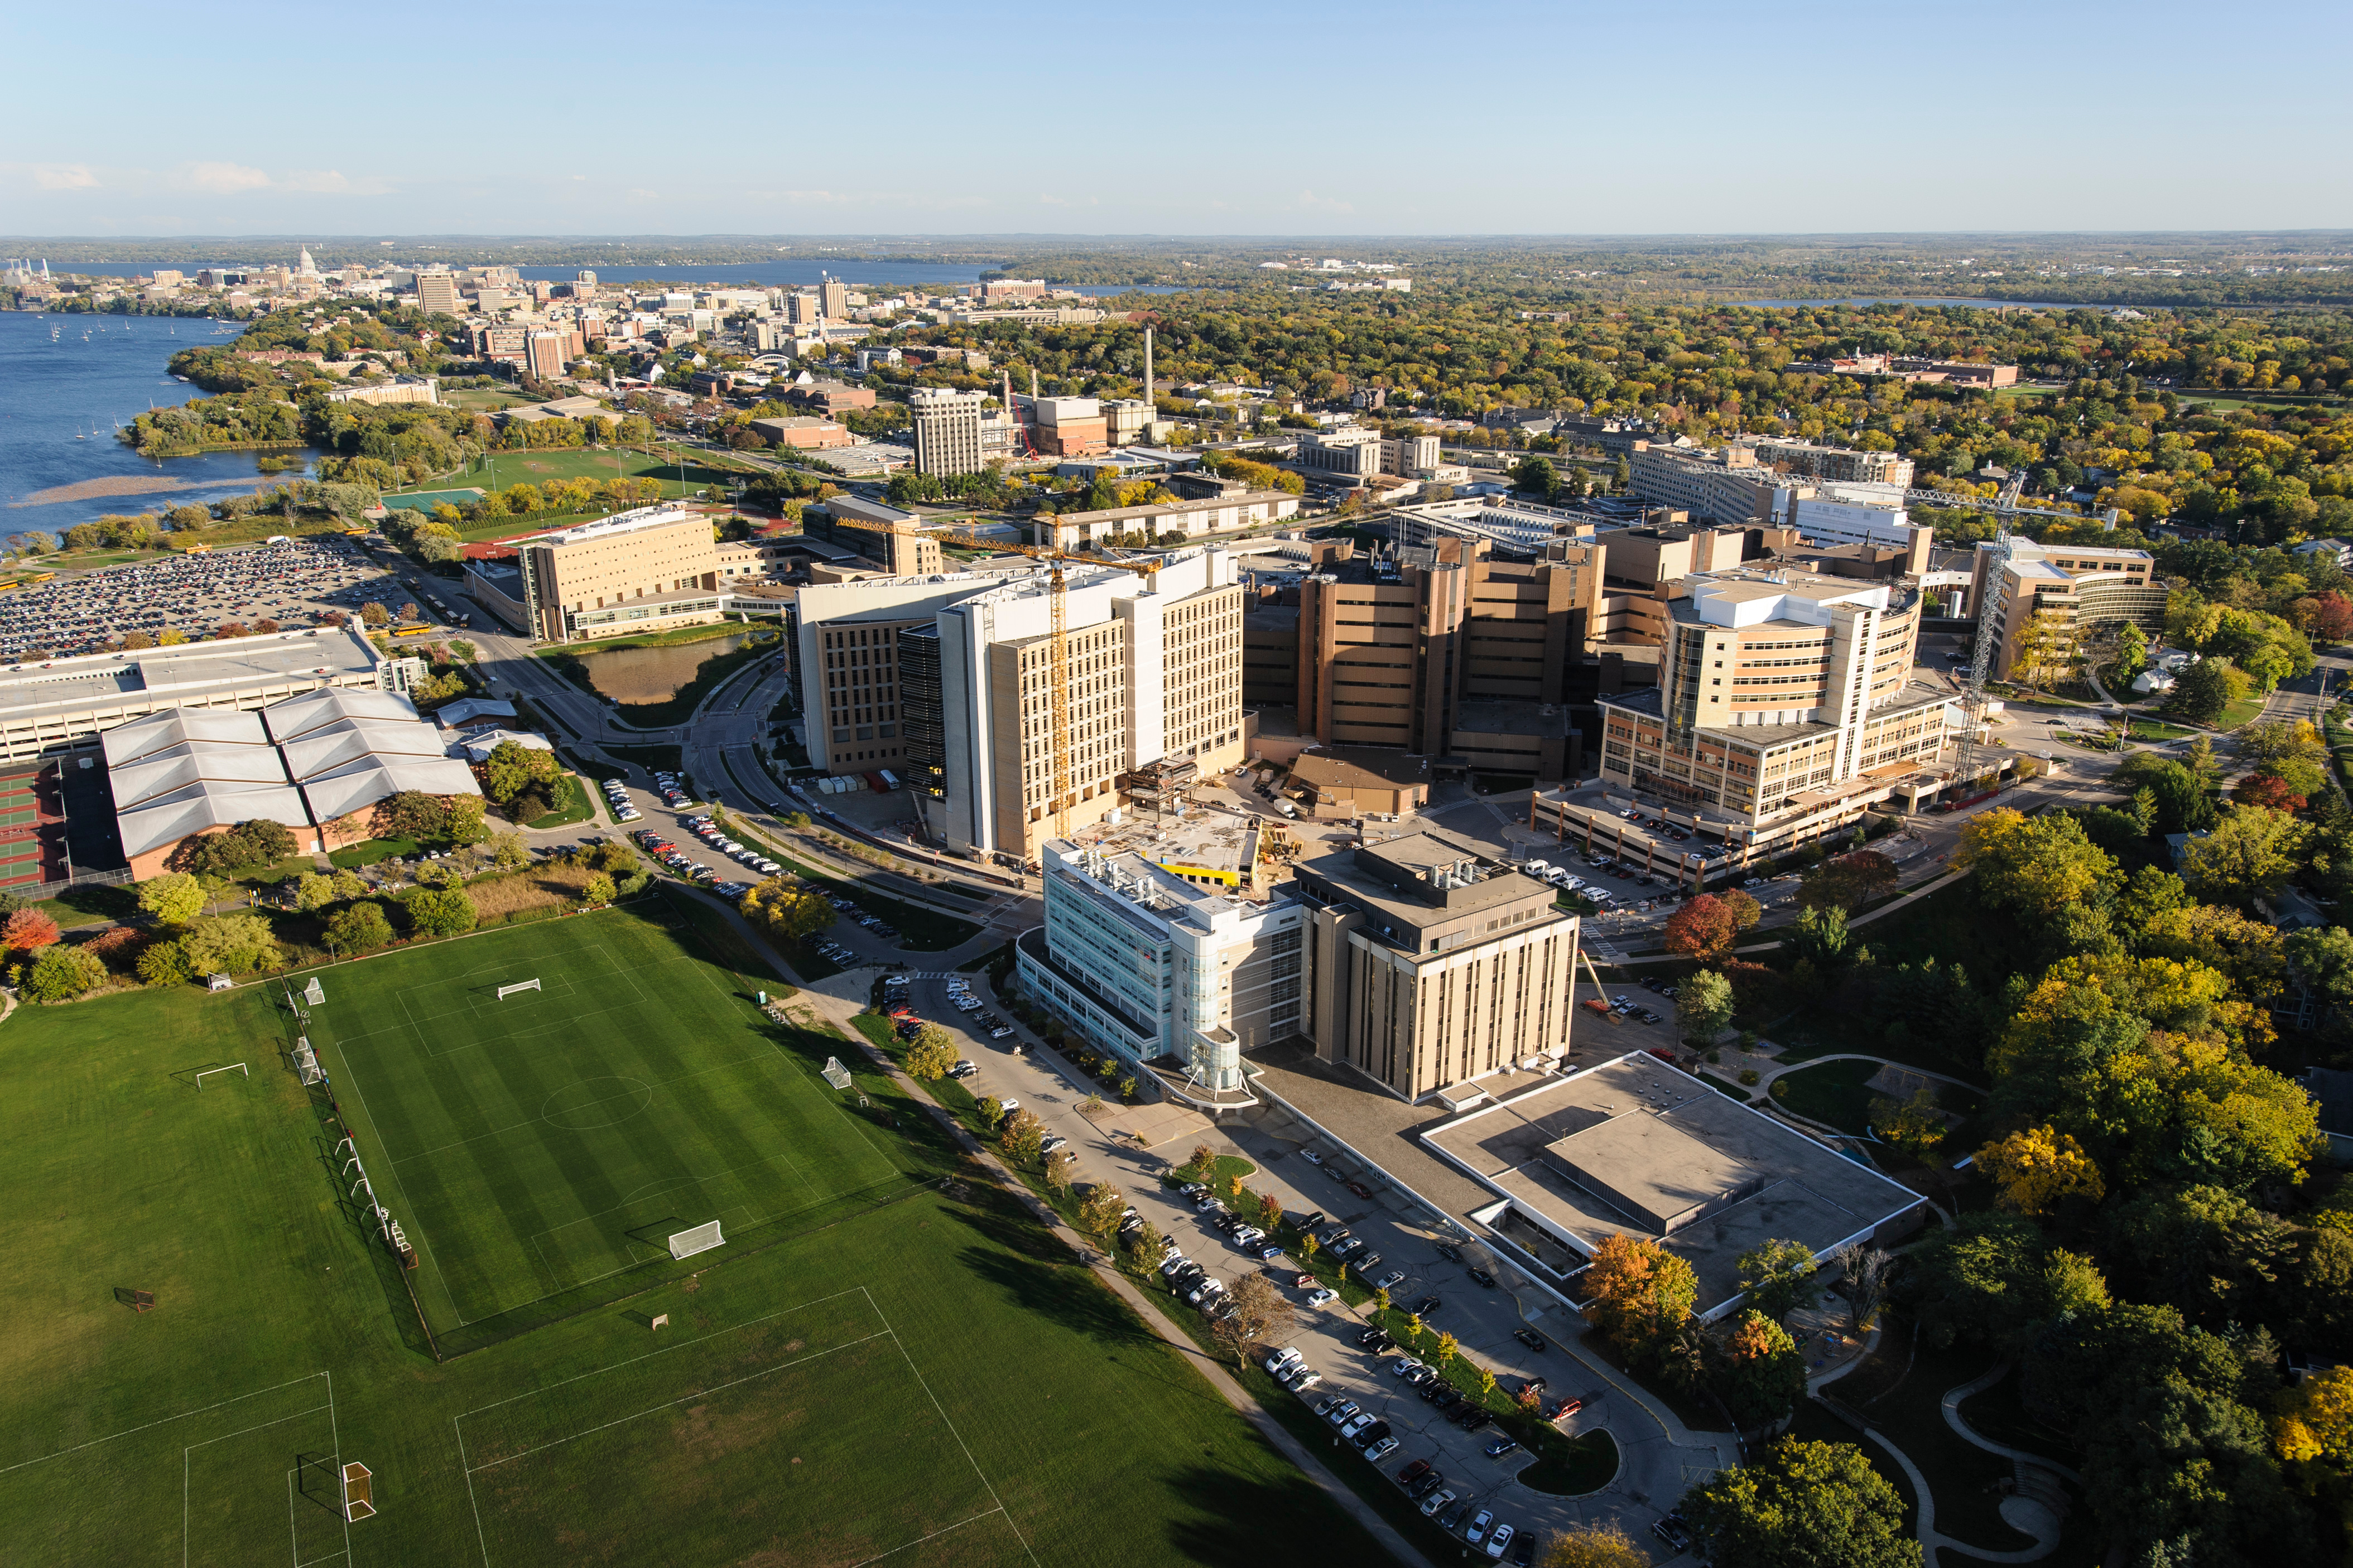 The medical area of University of Wisconsin-Madison